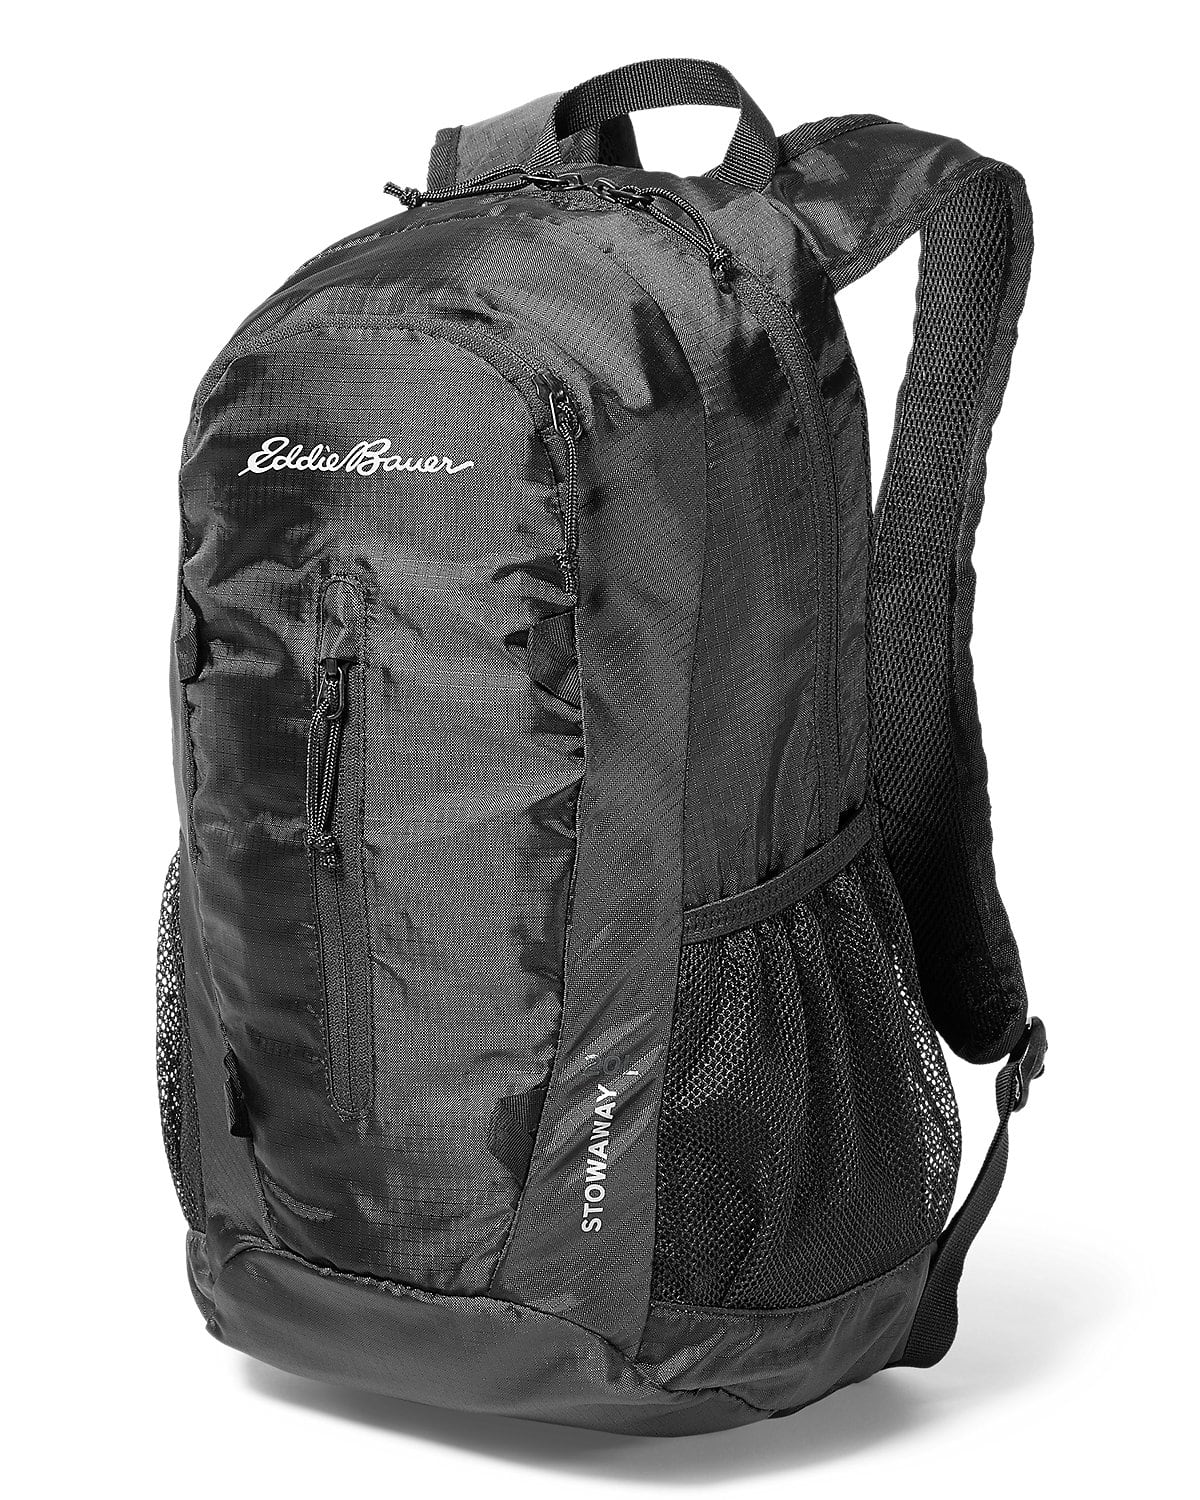 Eddie Bauer Stowaway 20L Packable Daypack, a Wirecutter pick, $15 (50% off) w/FS